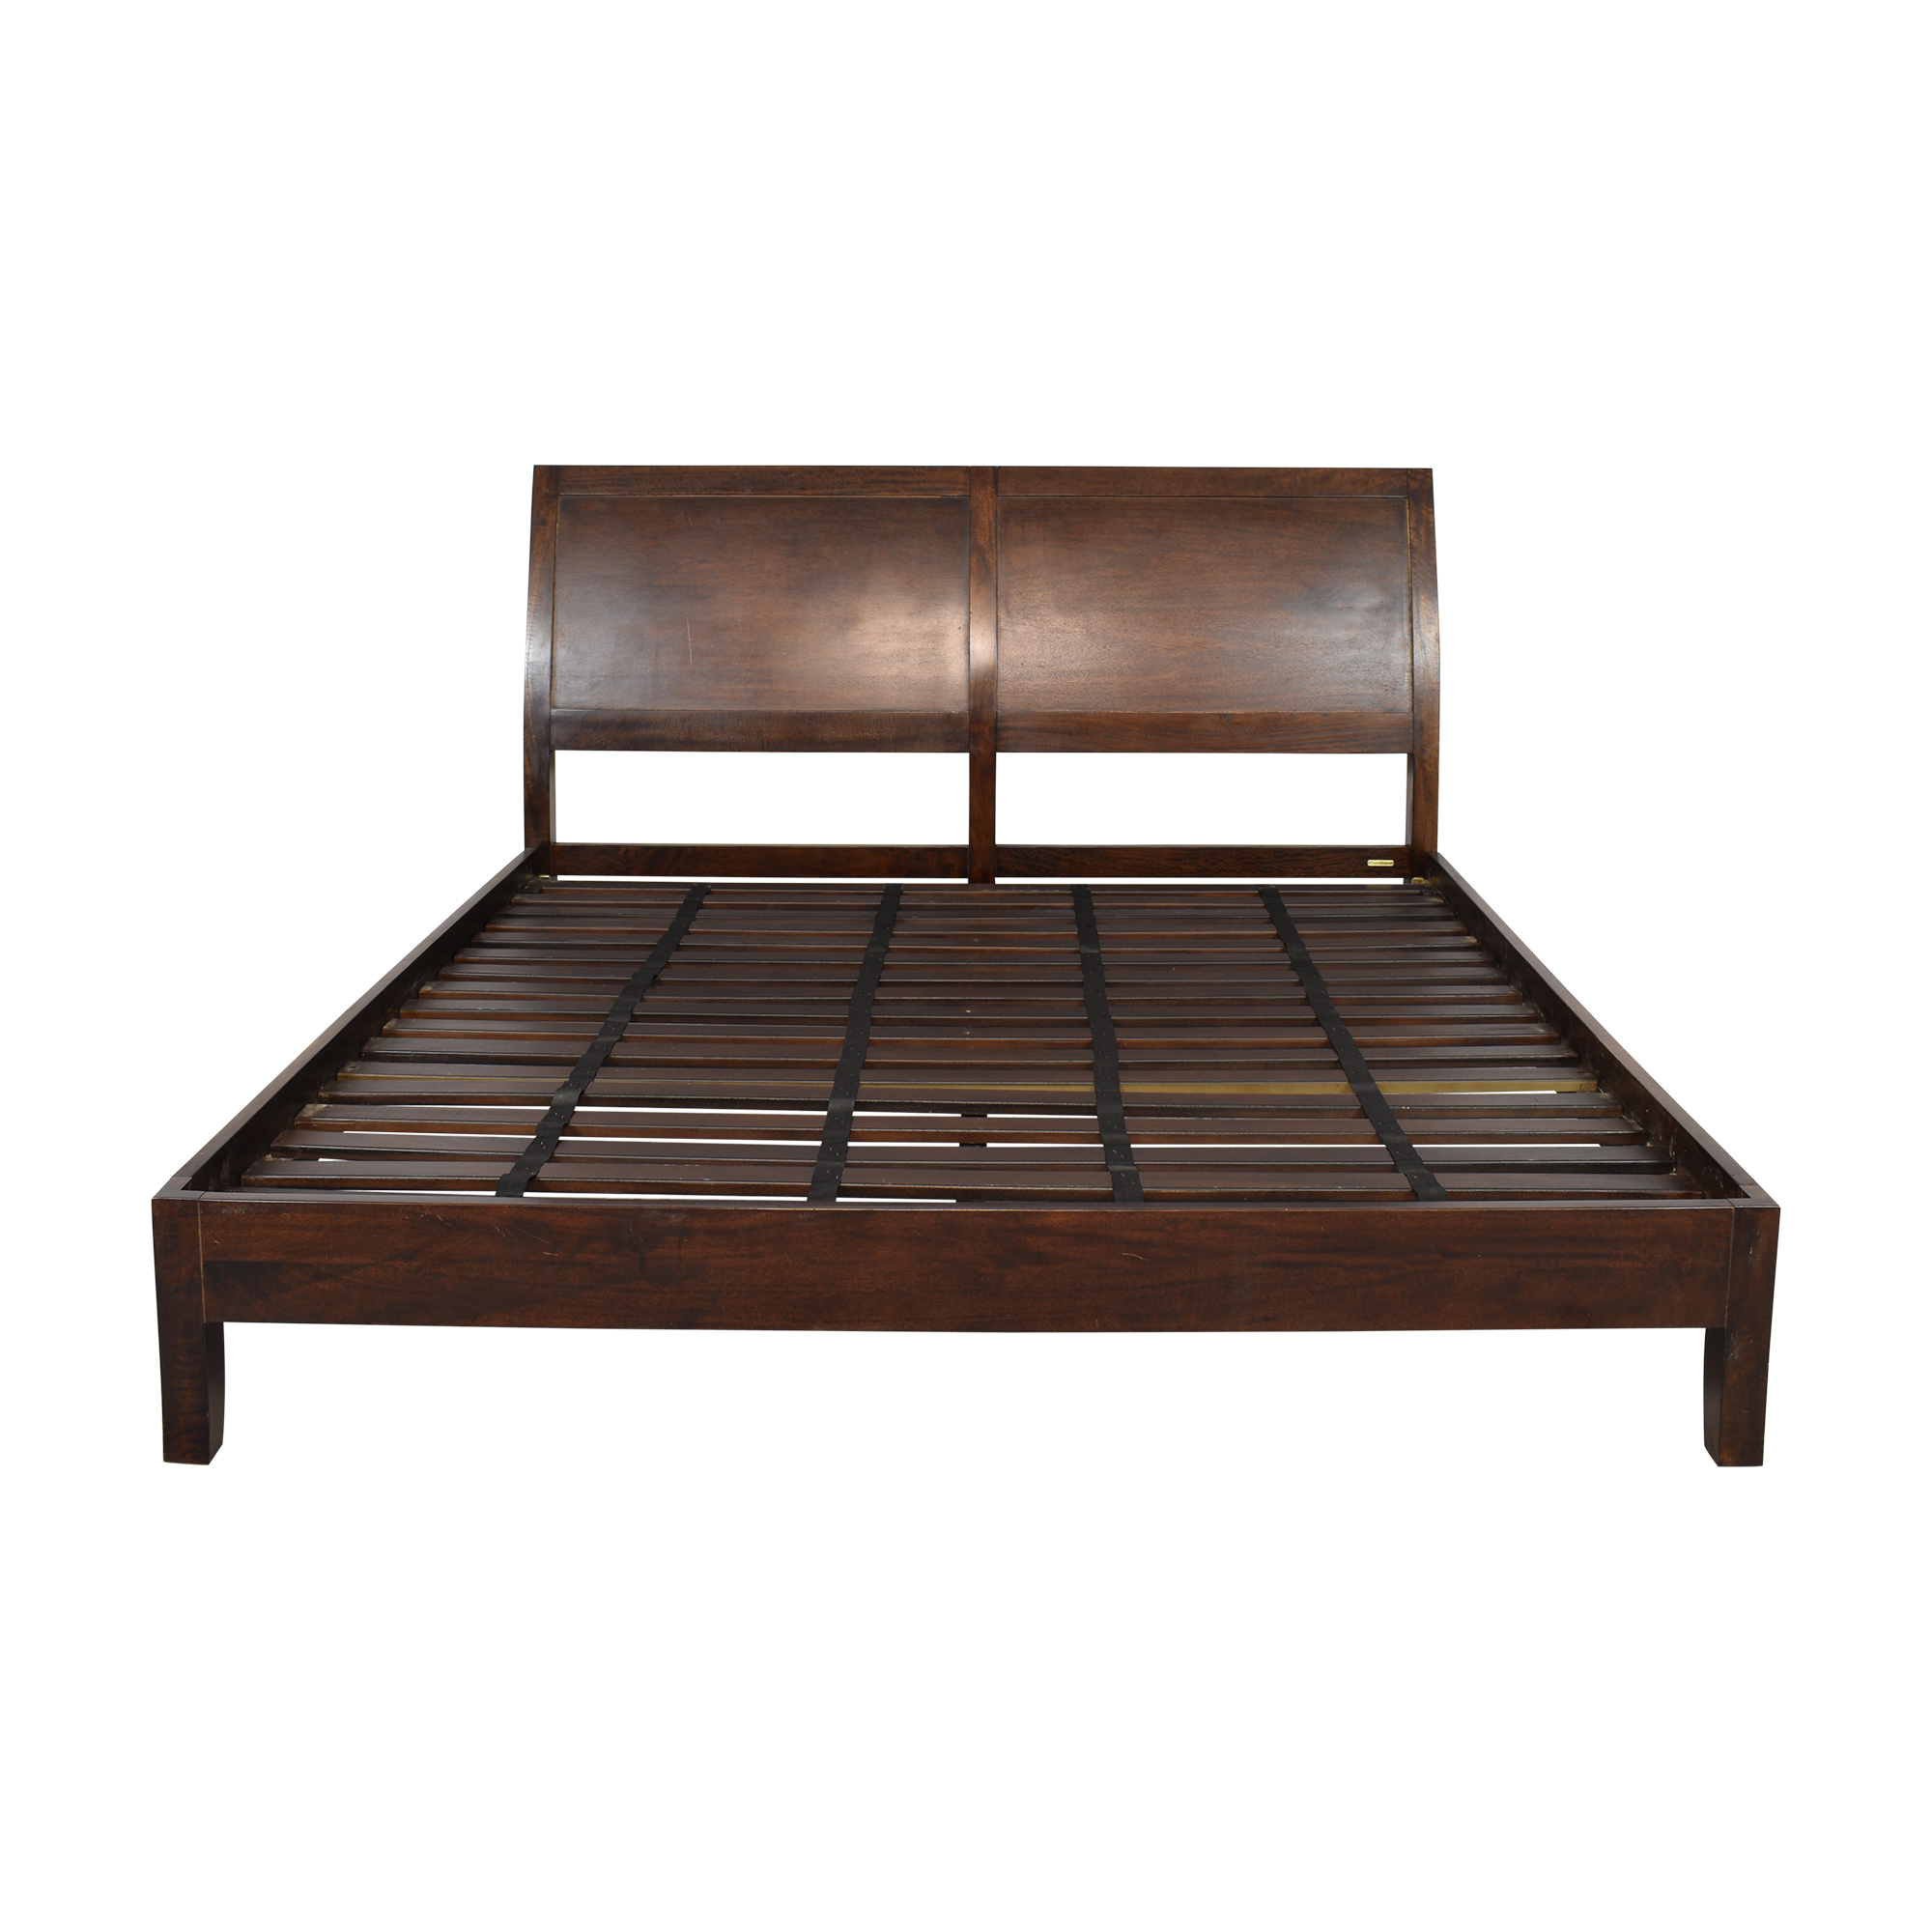 Crate & Barrel Crate & Barrel Dawson King Sleigh Bed ma